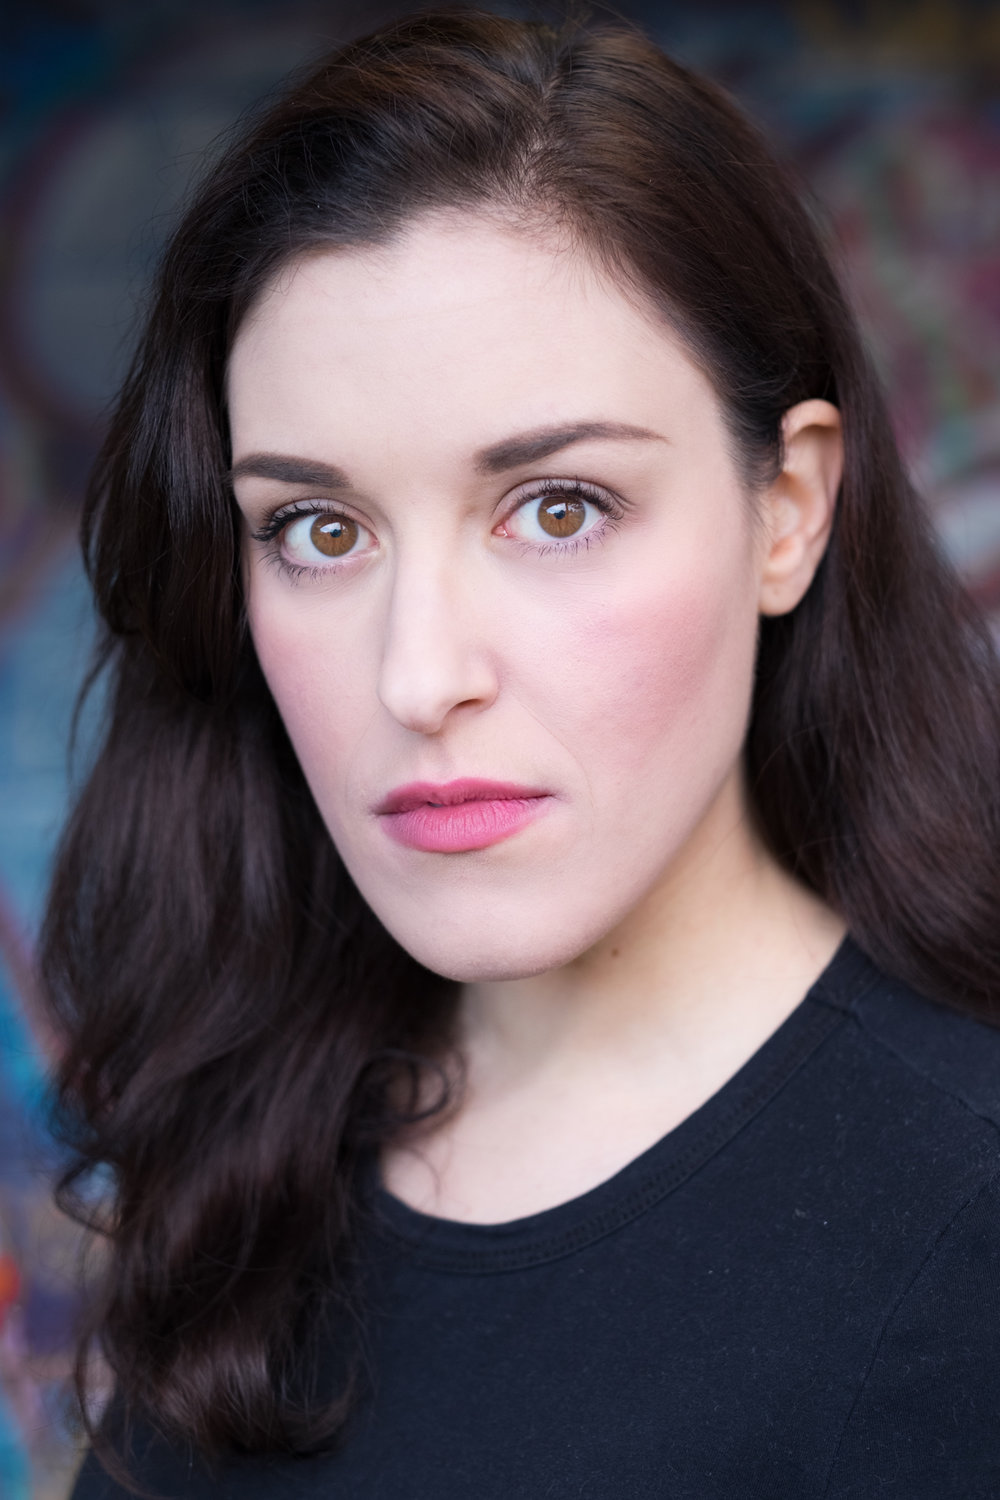 Melbourne Actors Headshots - Ilana Gelbert